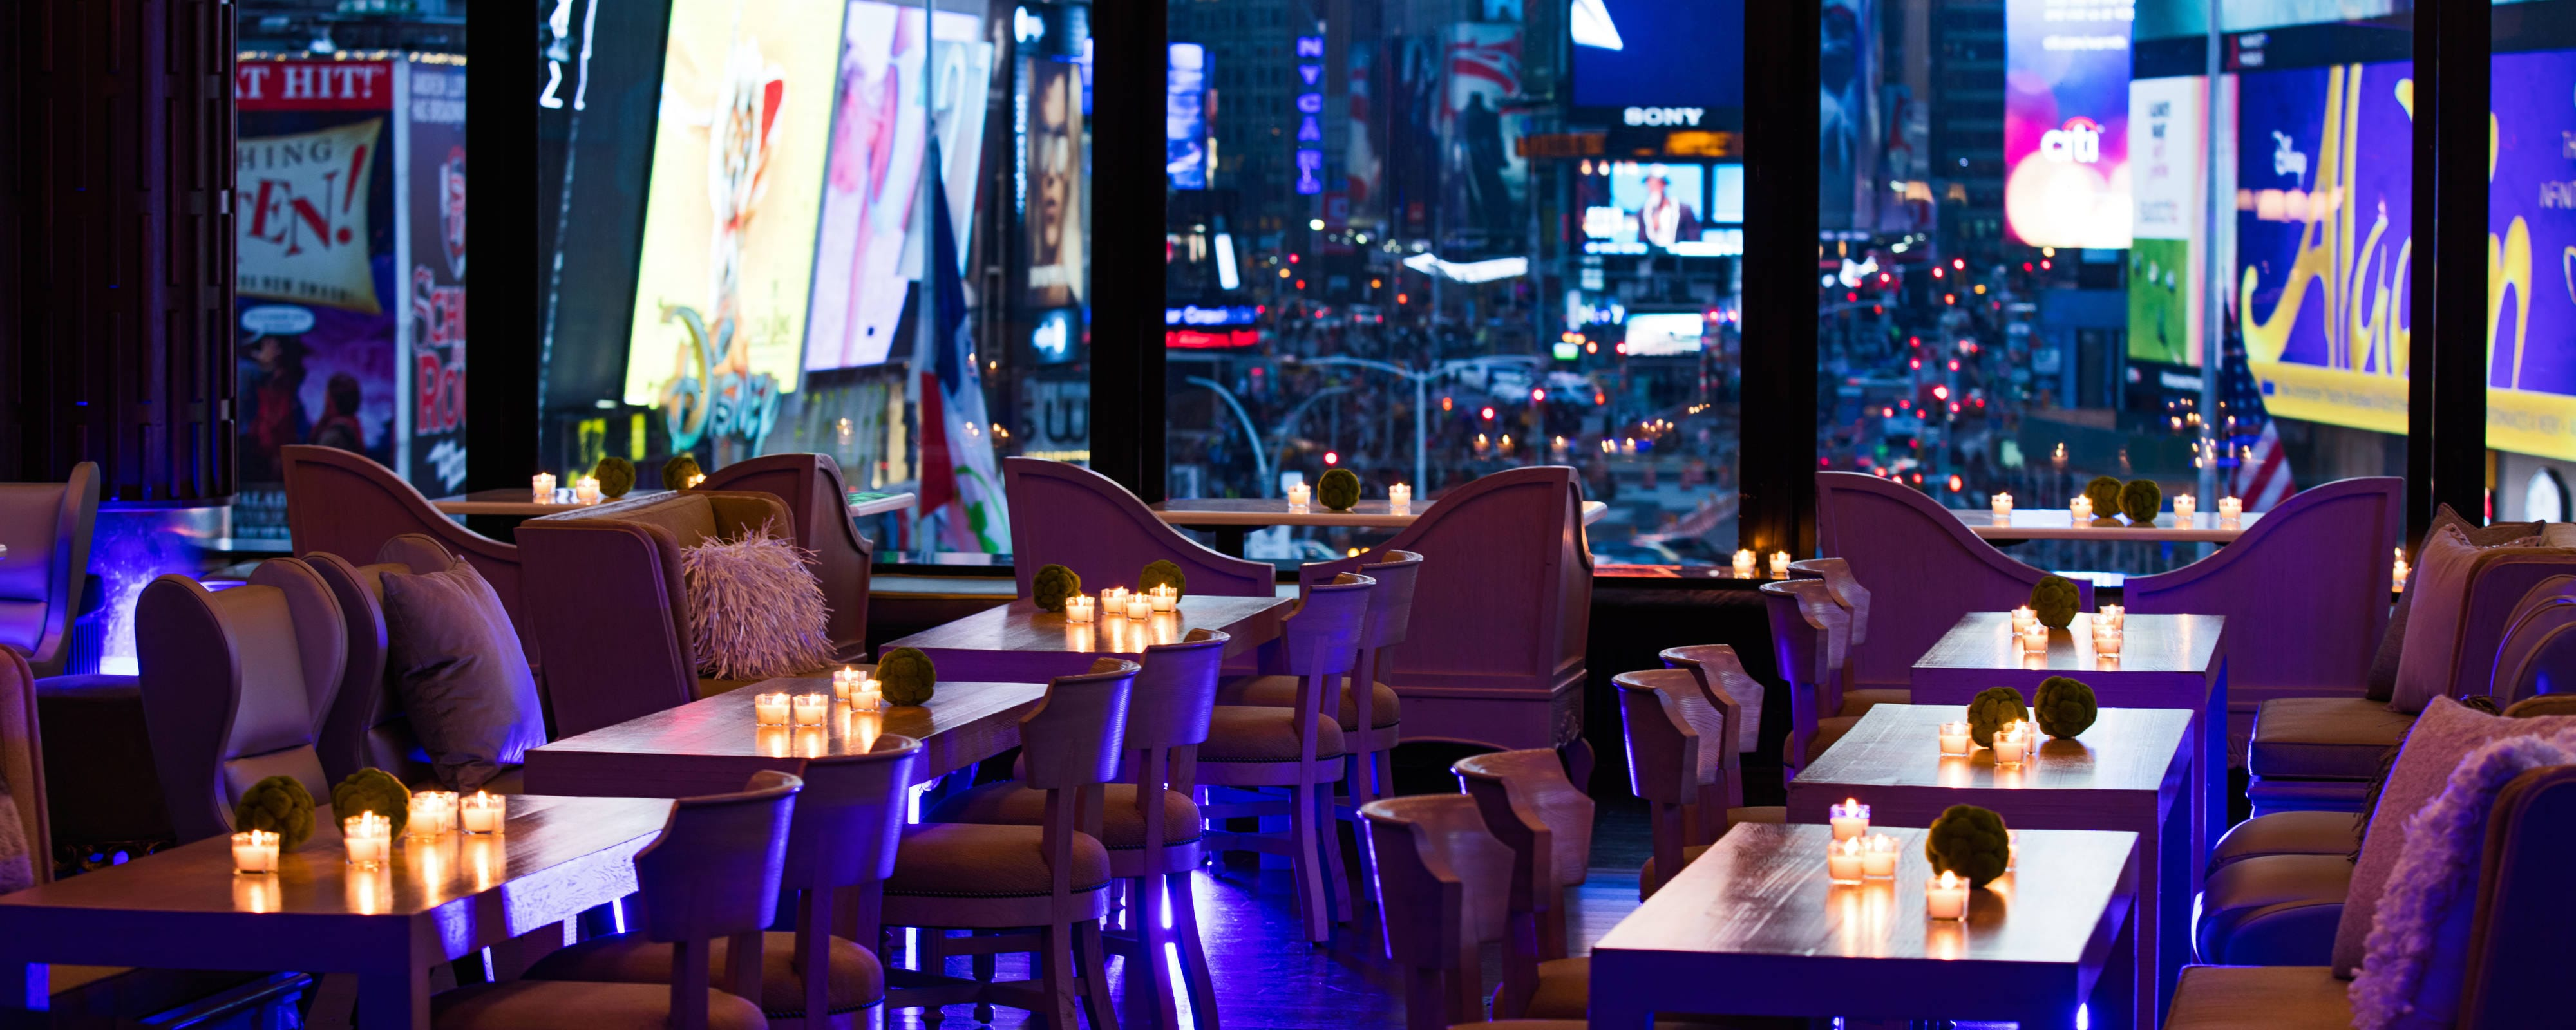 Best Hookup Bars In Times Square